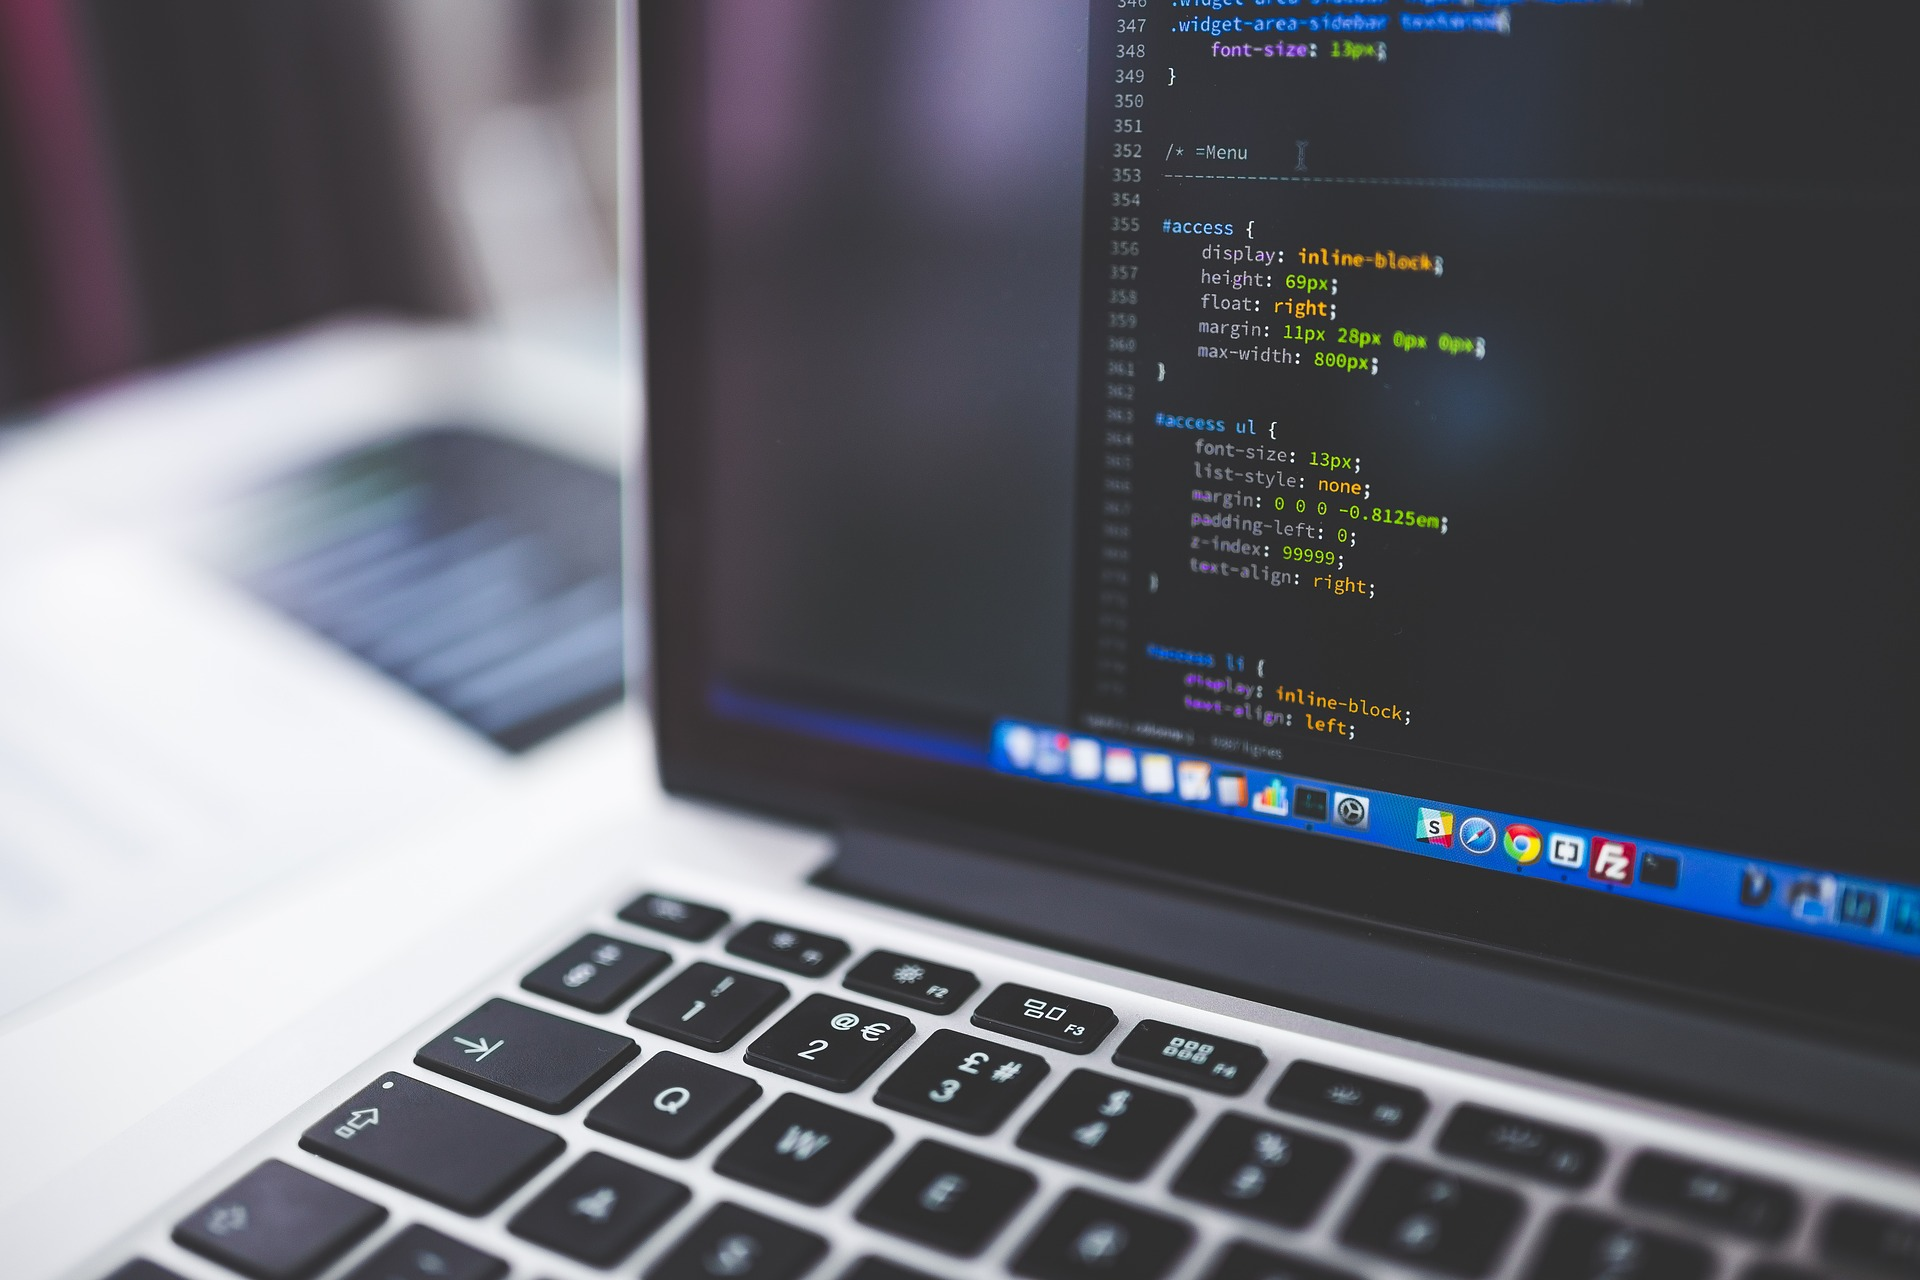 Tools and techniques are useful to speed up the development process of application.